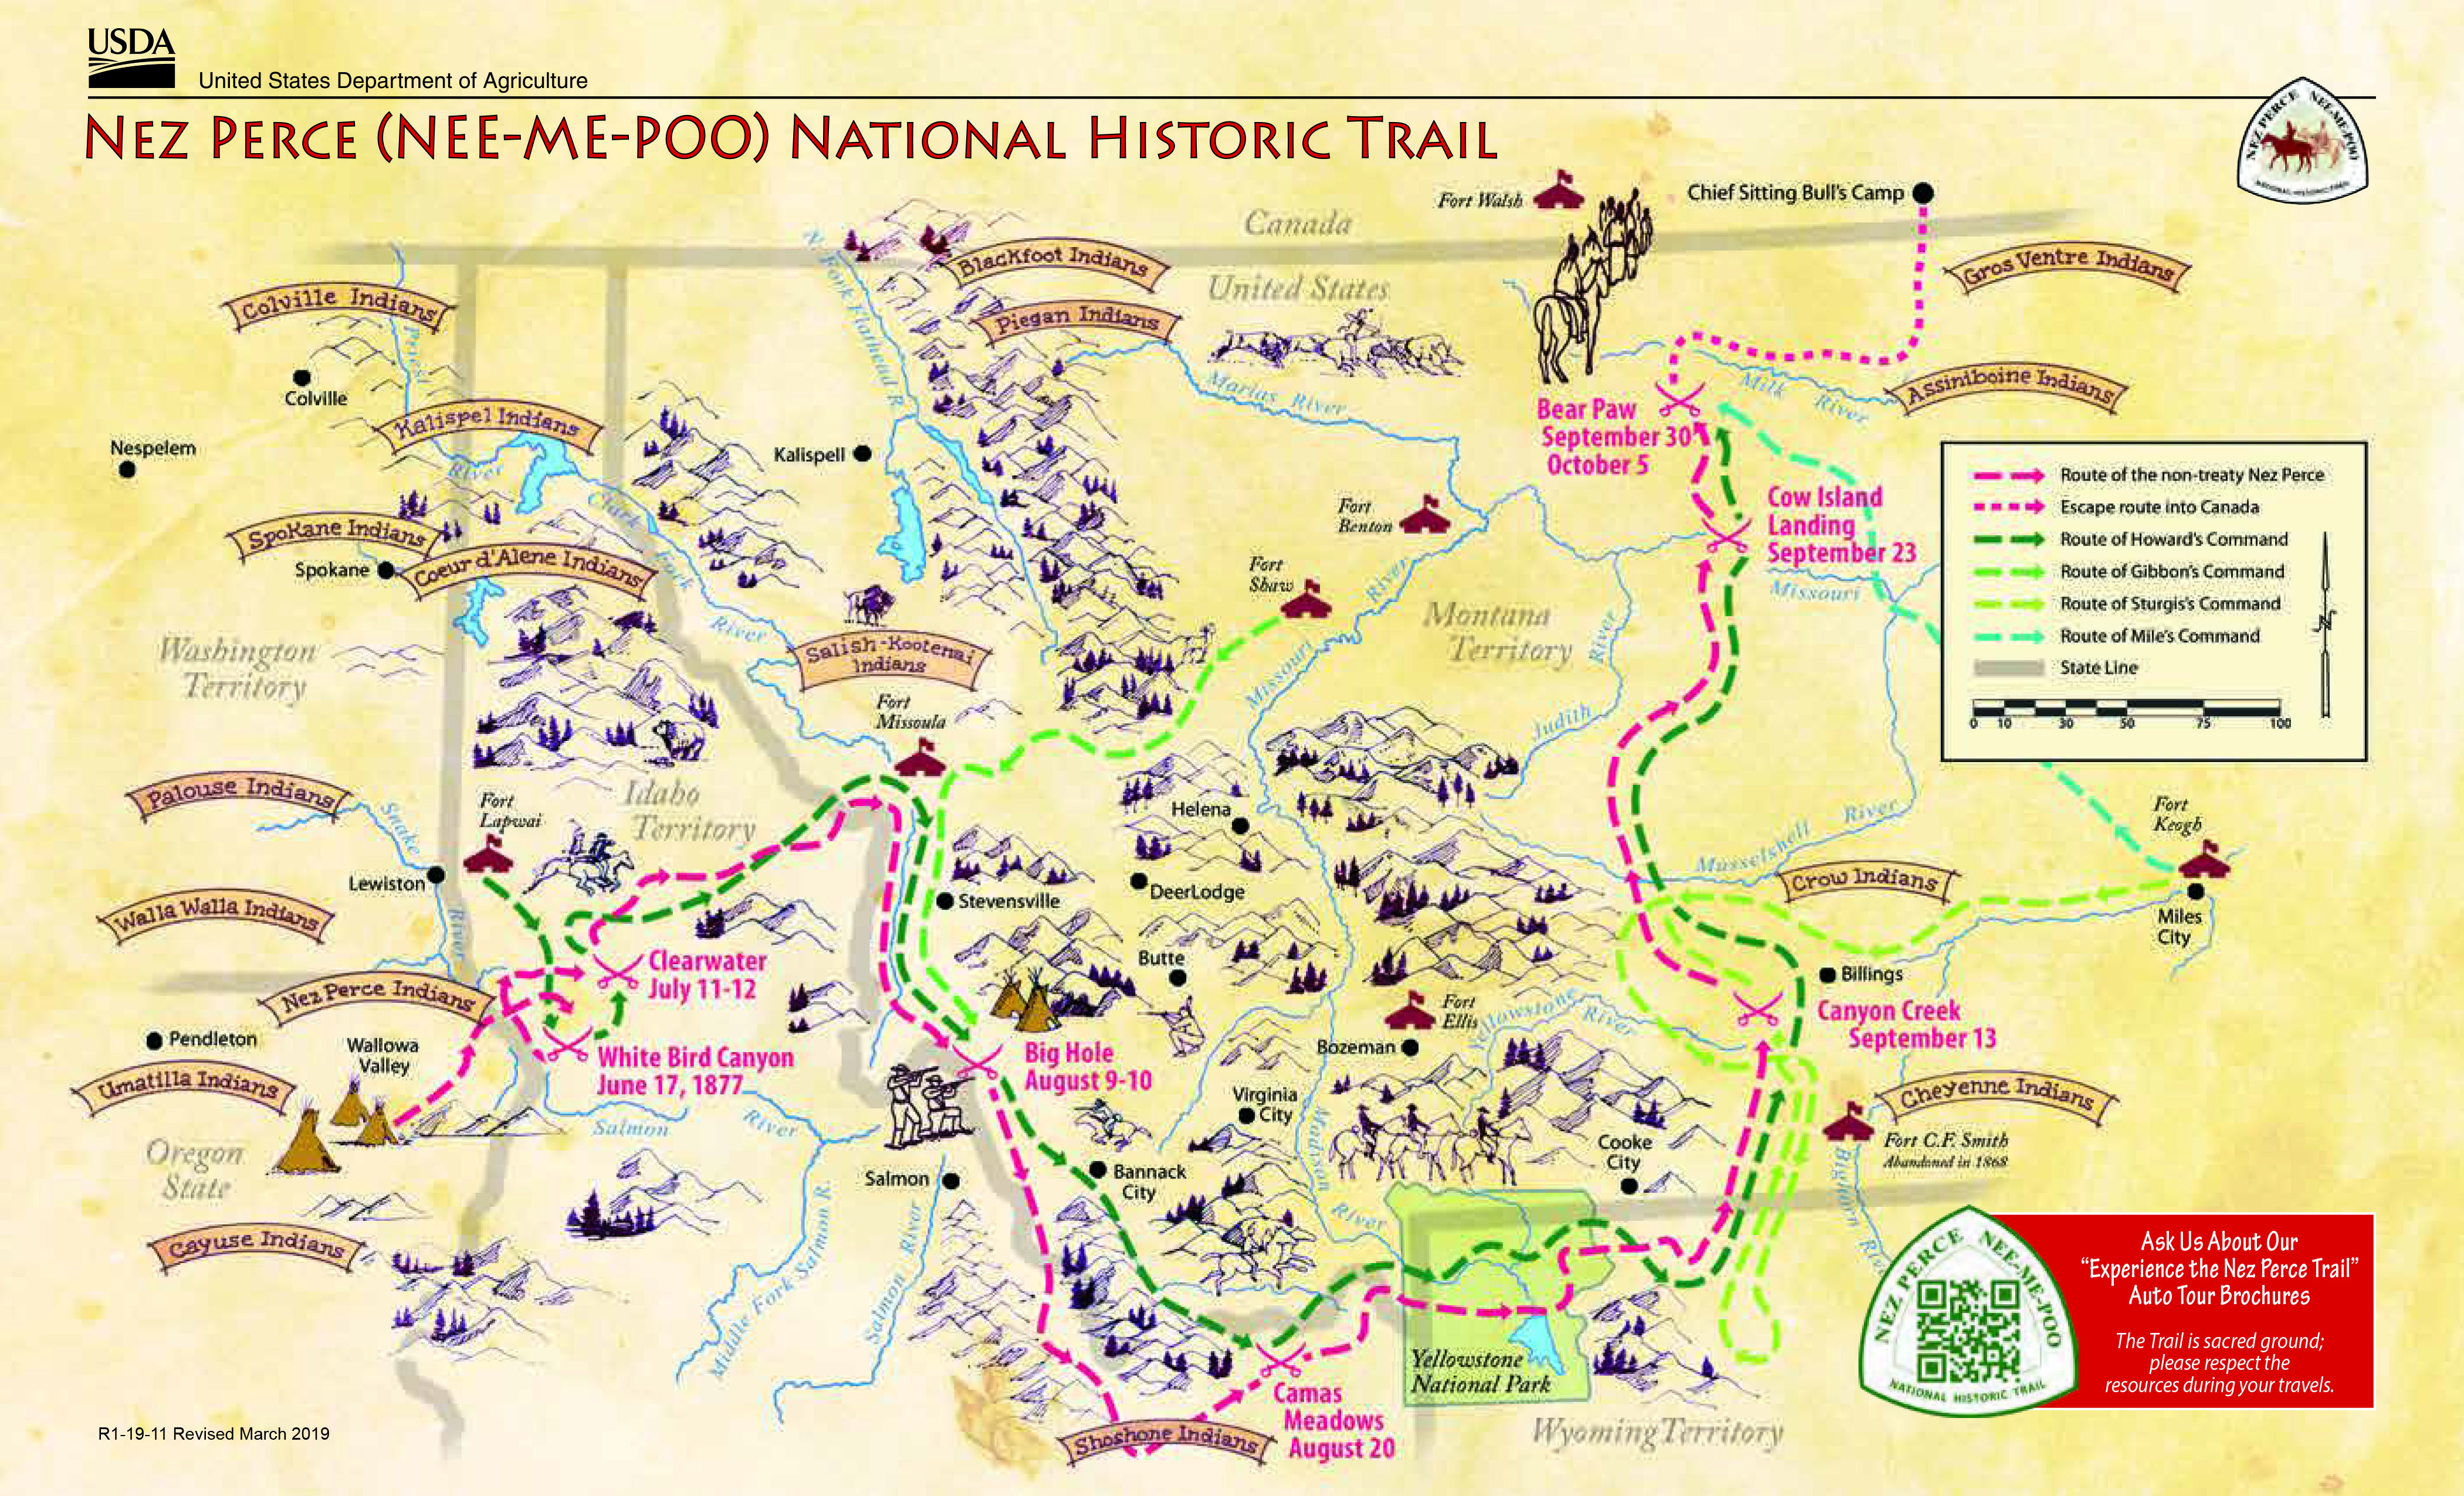 Hand-drawn-style map of the Nez Perce NHT